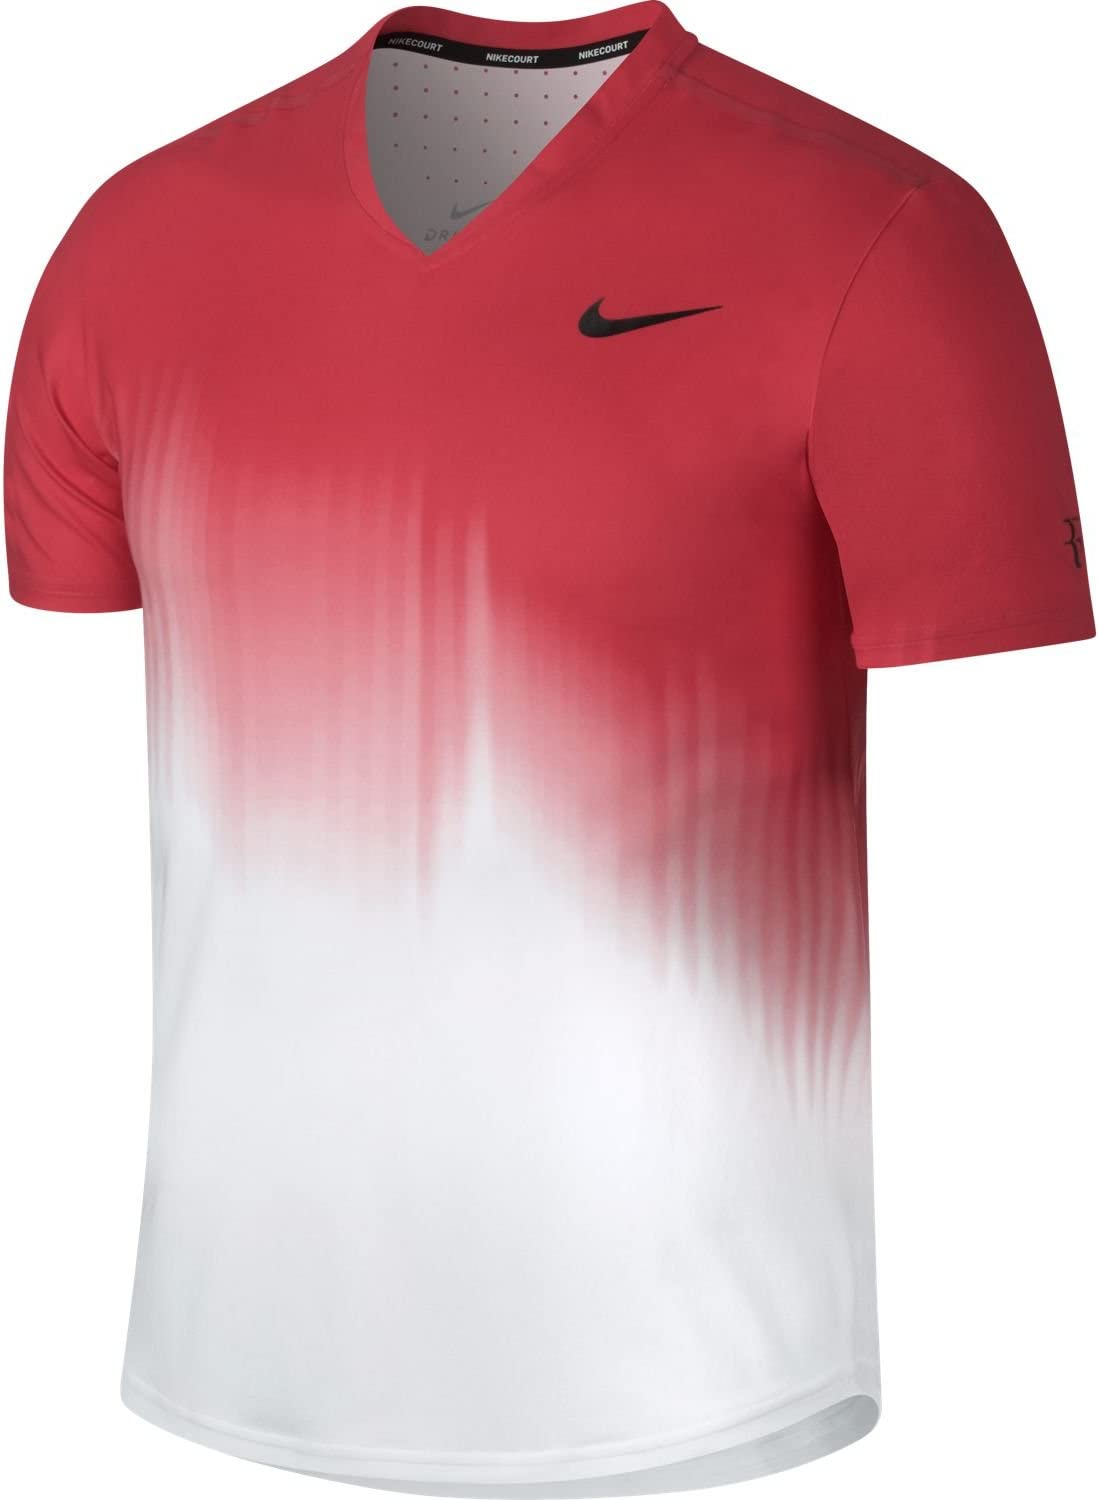 T Shirt Nike RF RED US OPEN 2017 - XL: Amazon.es: Deportes y aire ...